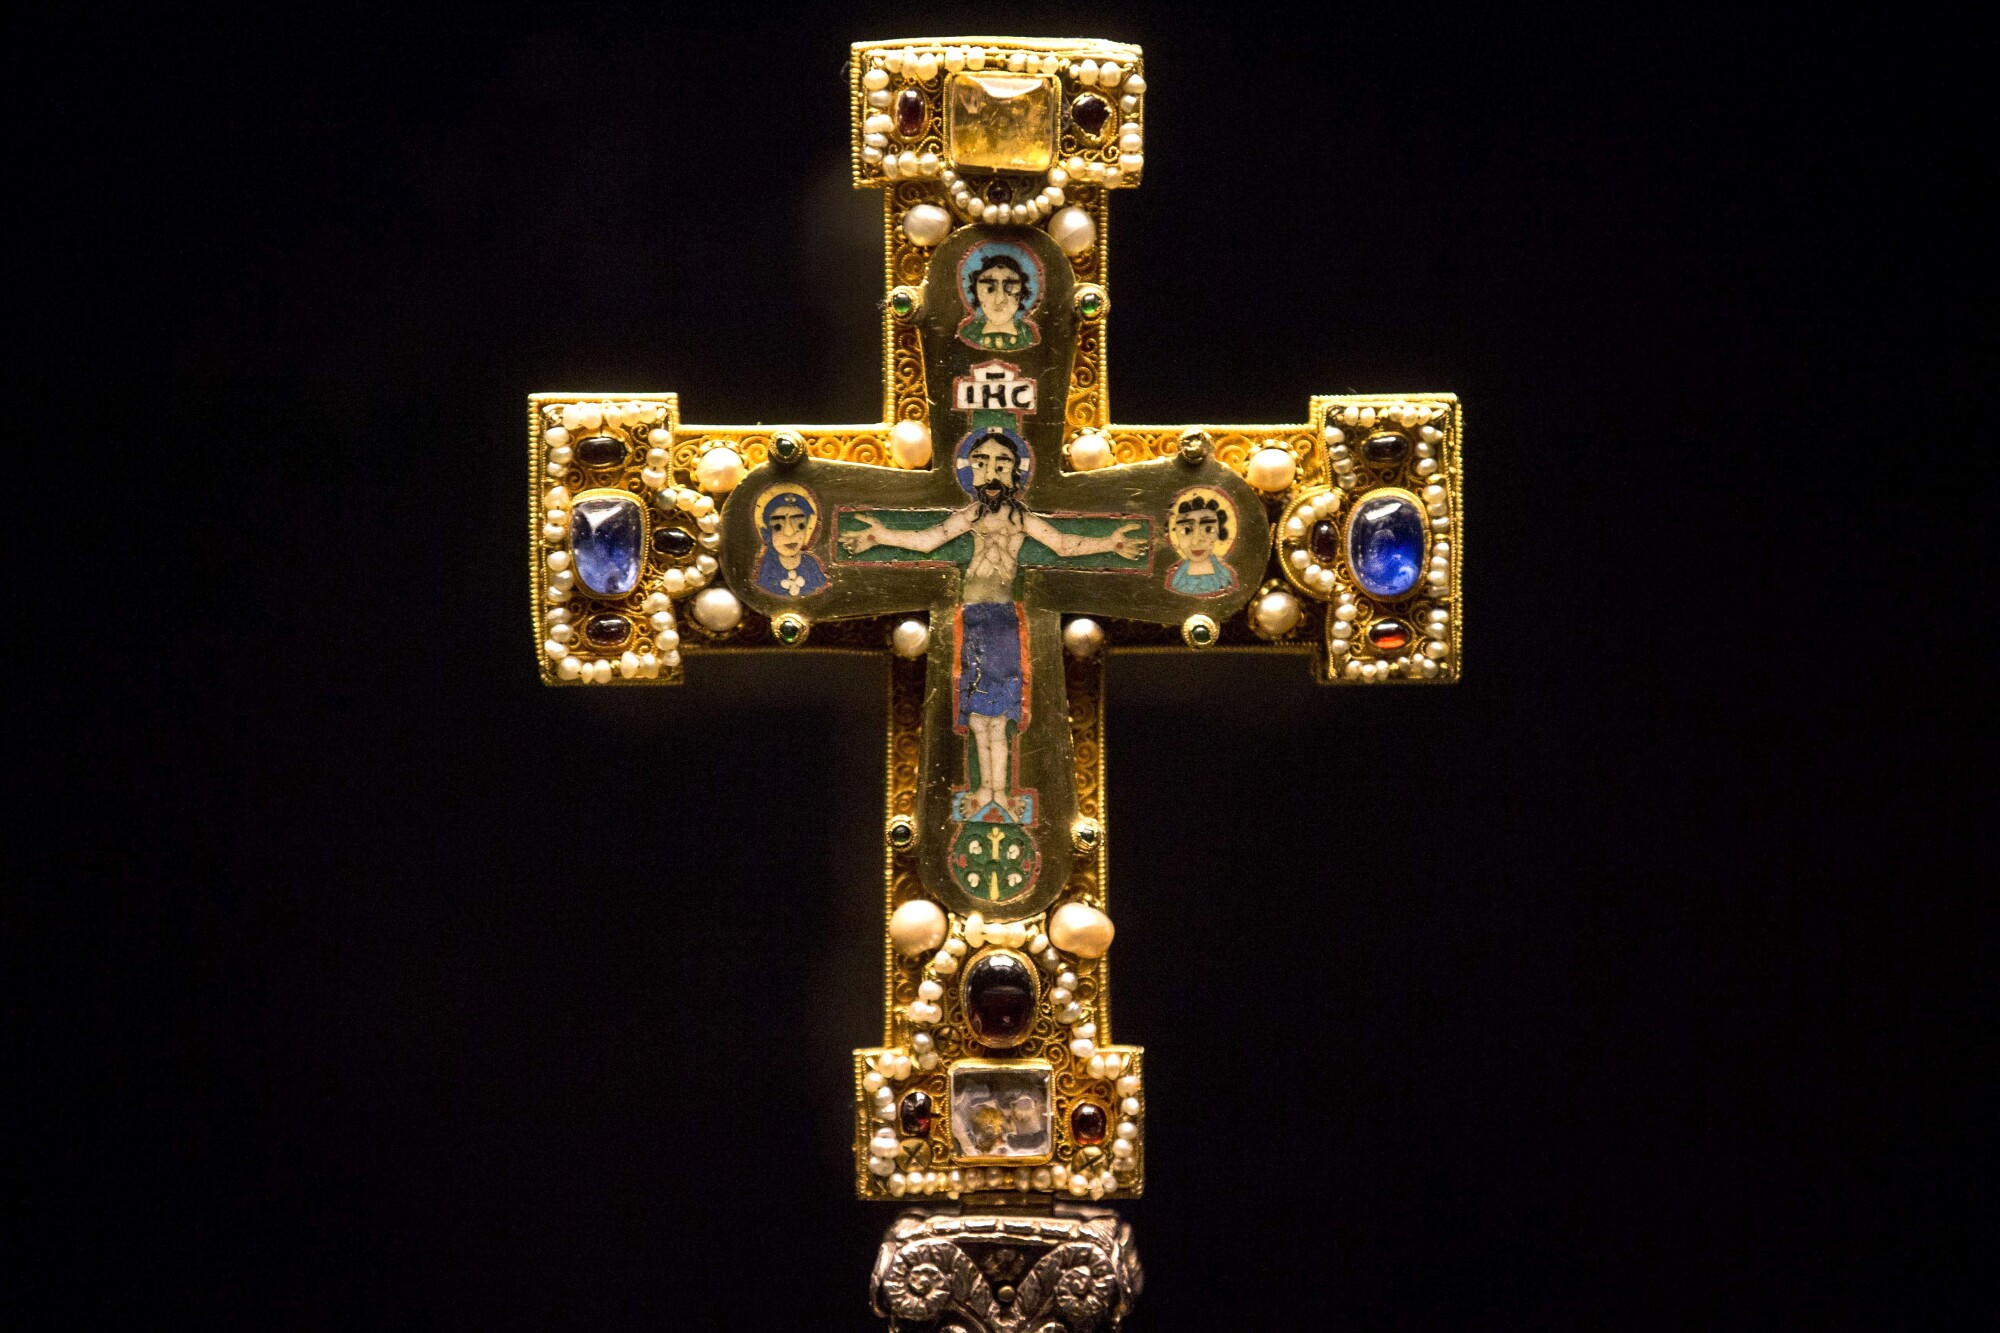 A medieval cross, part of  the Guelph Treasure collection, is displayed at the Bode Museum in Berlin